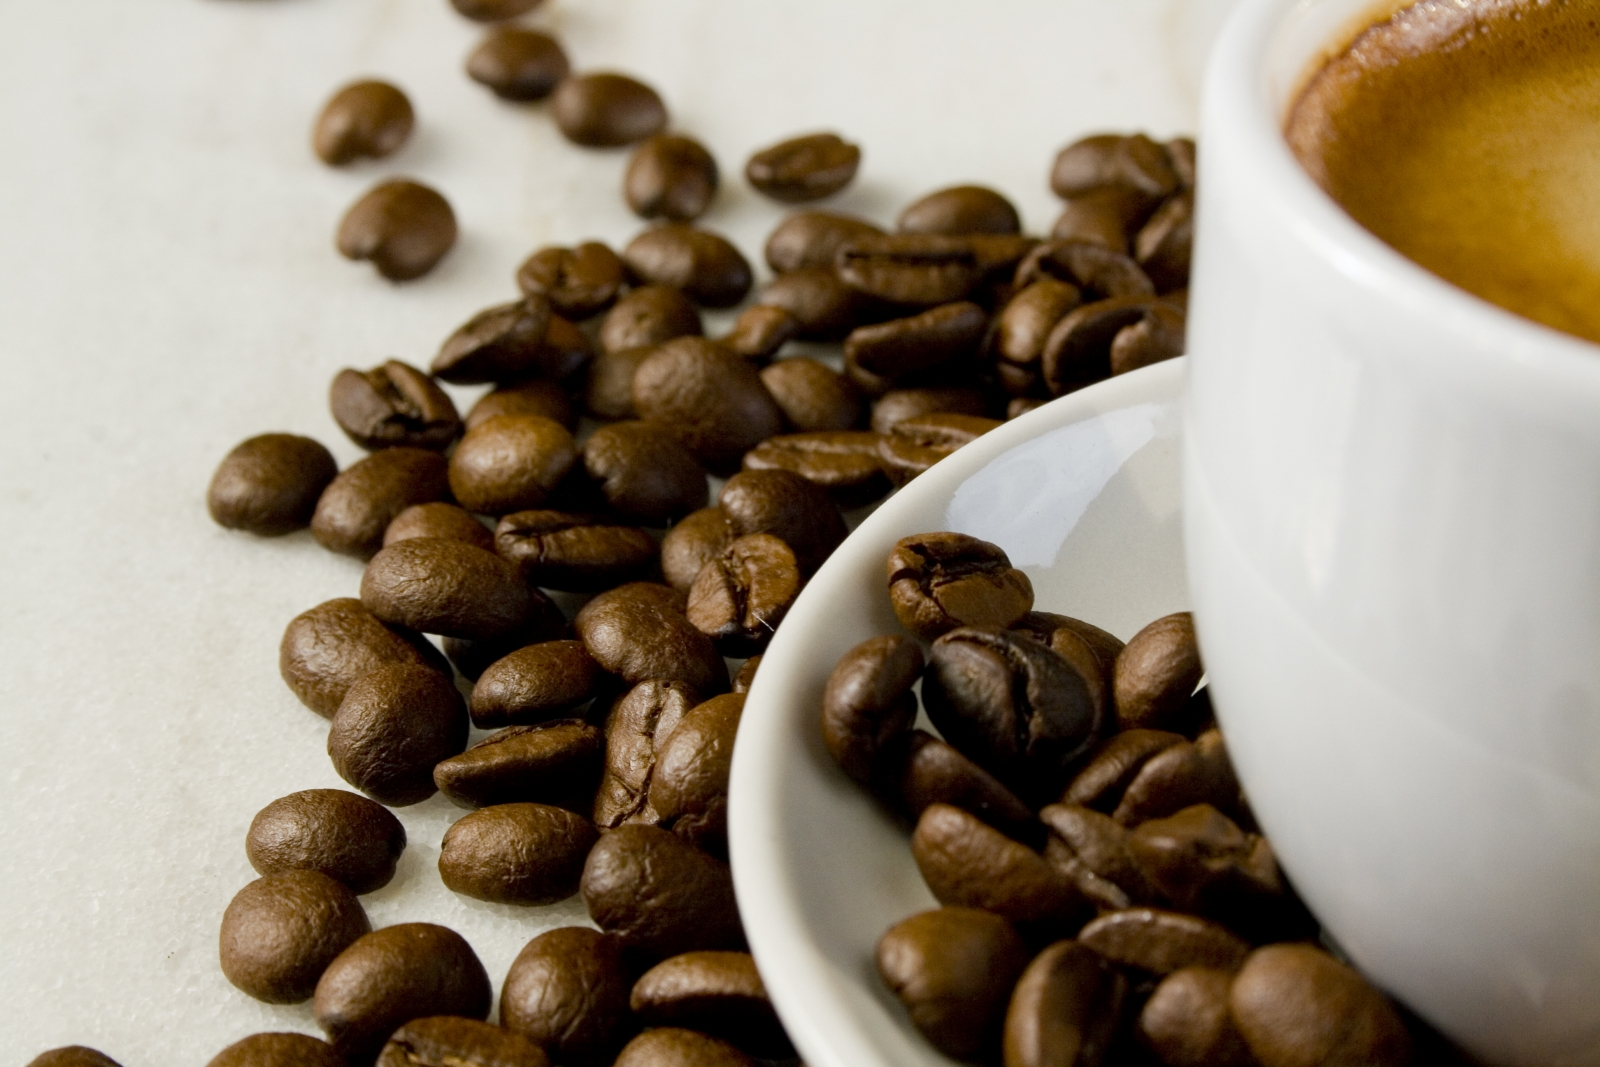 Coffee could add months to your life, new study suggests